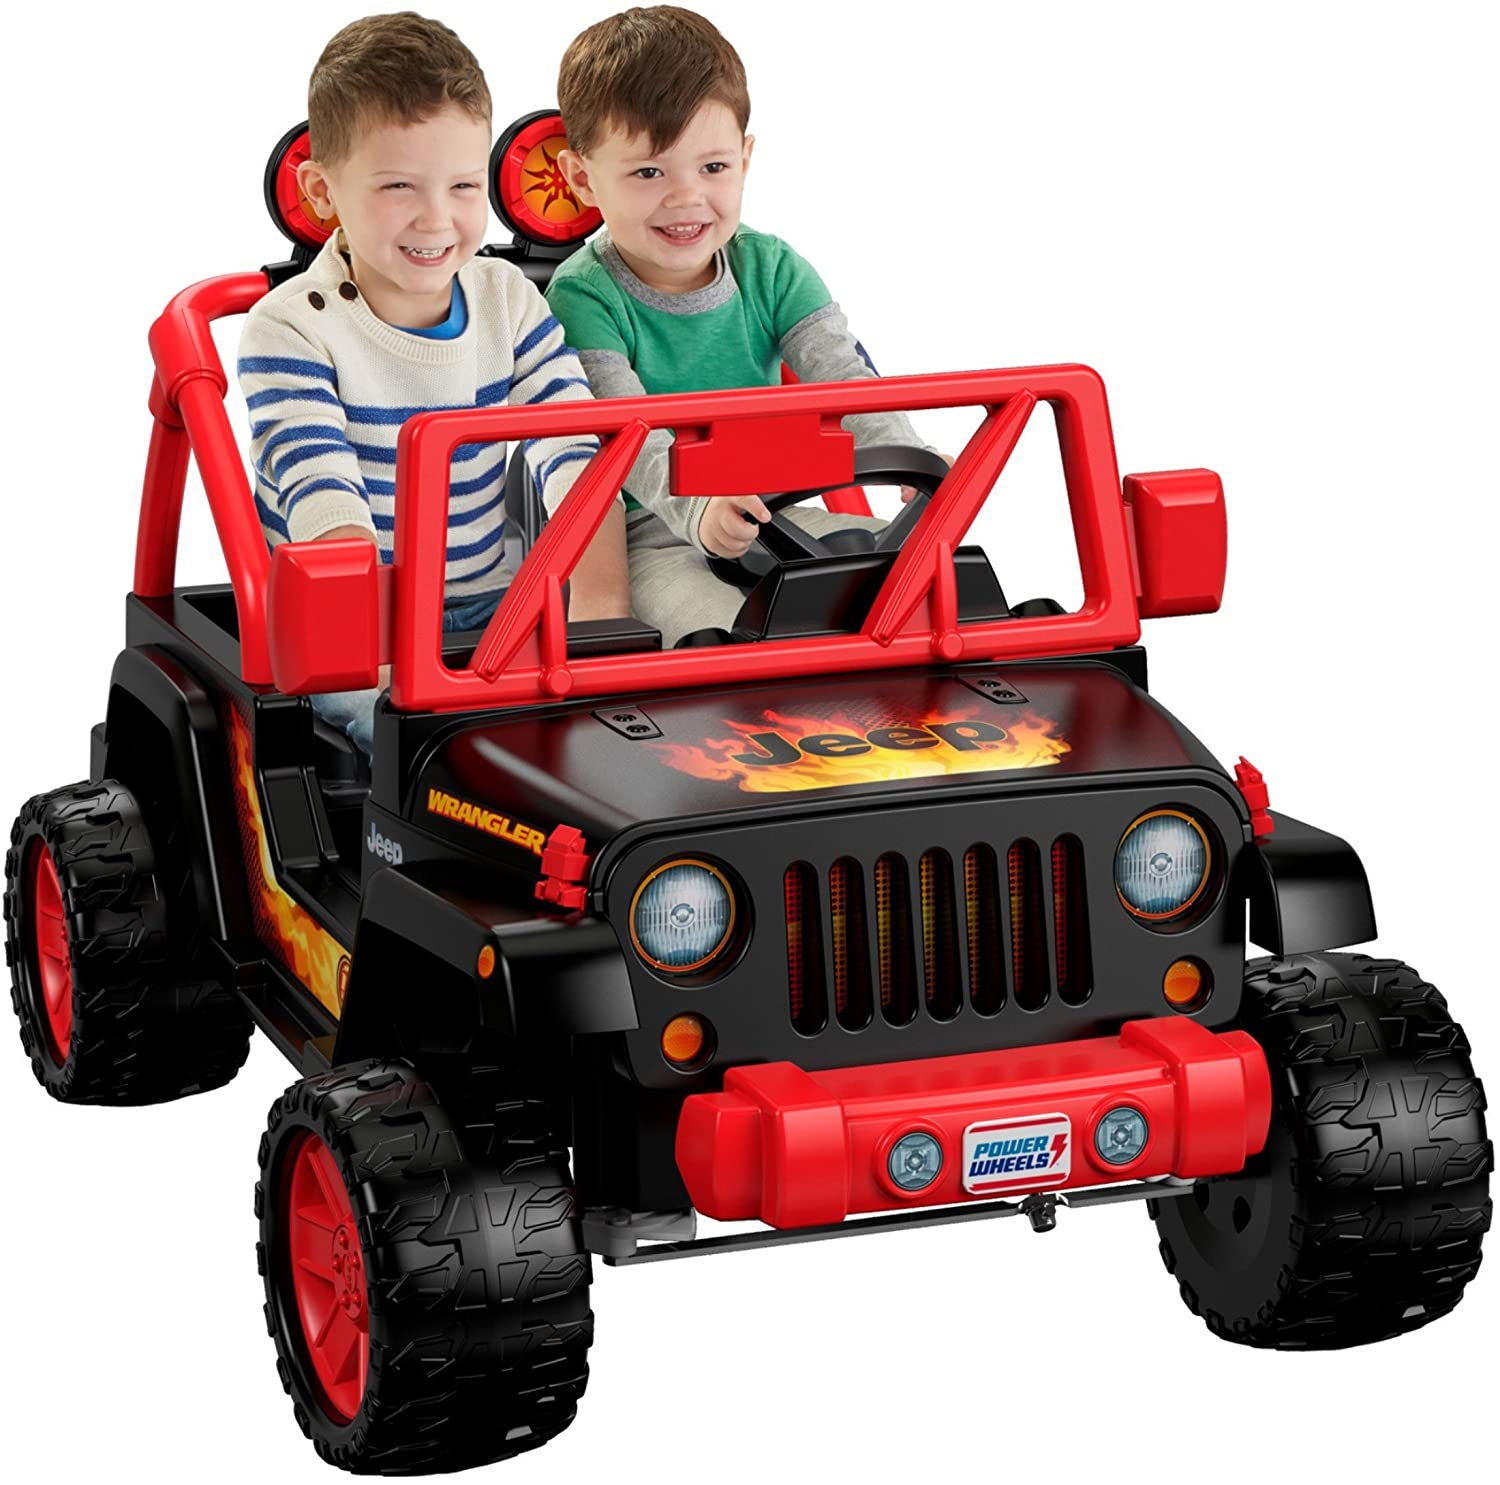 Tough Talking Wrangler Jeep By Power Wheels